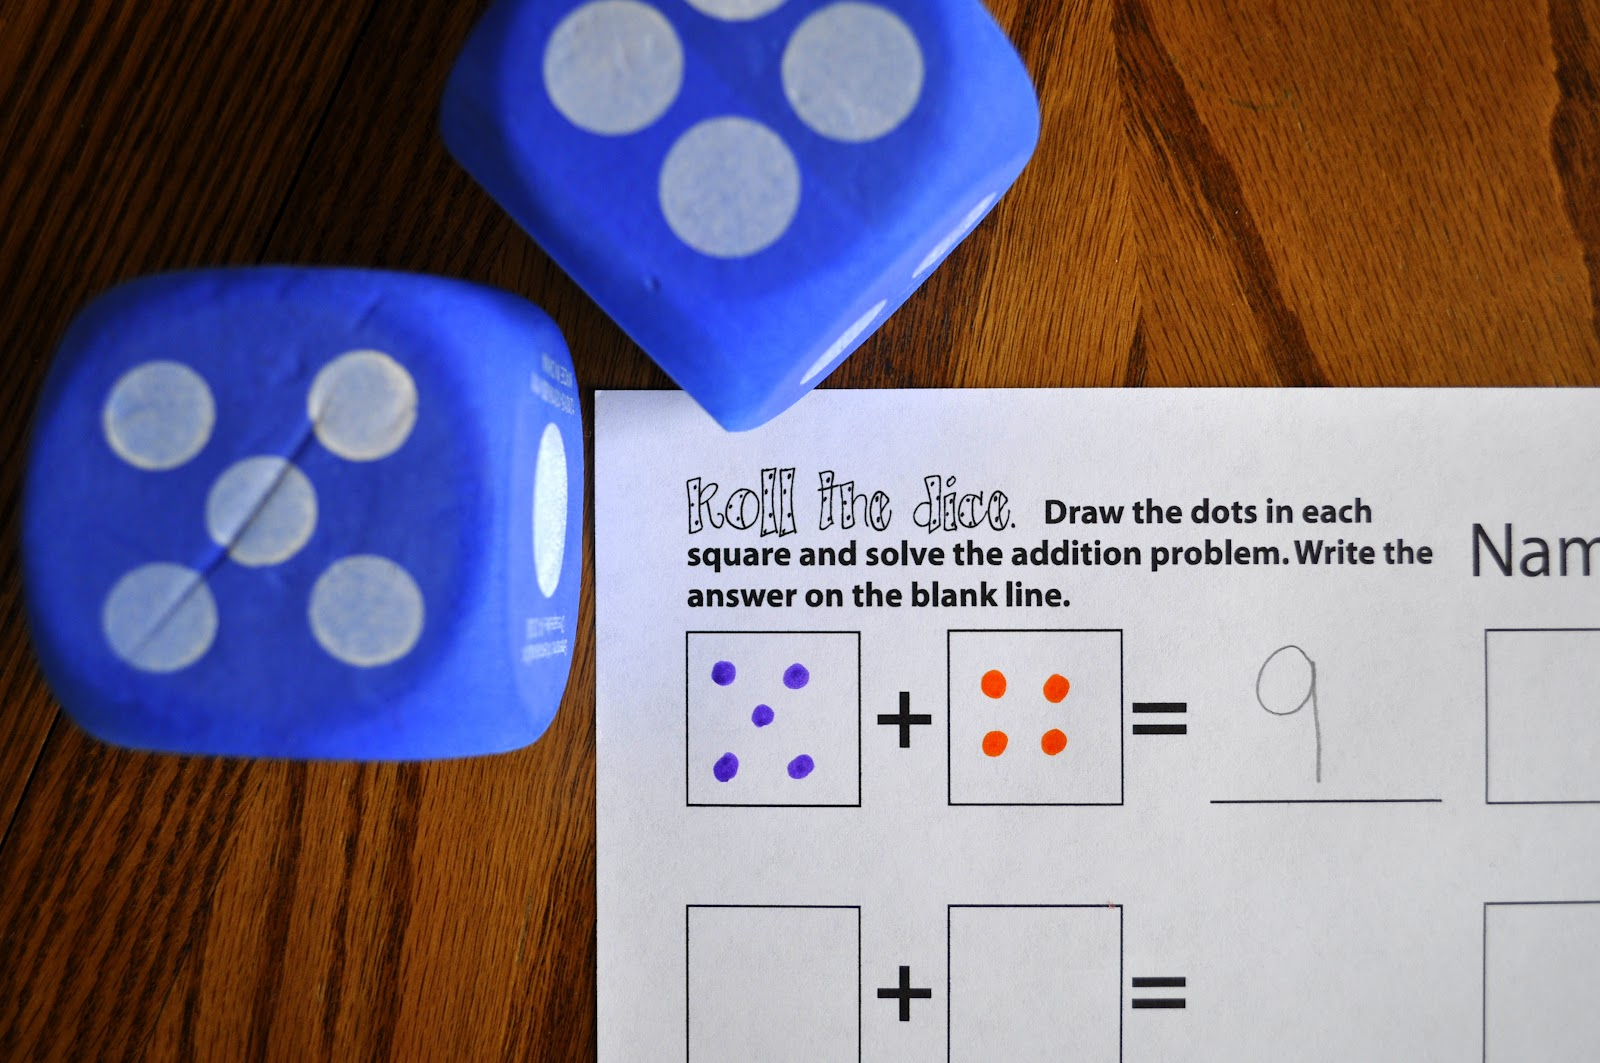 Color games for pre k - I Made A Printable Found Here For A Roll The Dice Addition Practice Game Simply Roll The Dice Color In The Dots And Solve The Problem